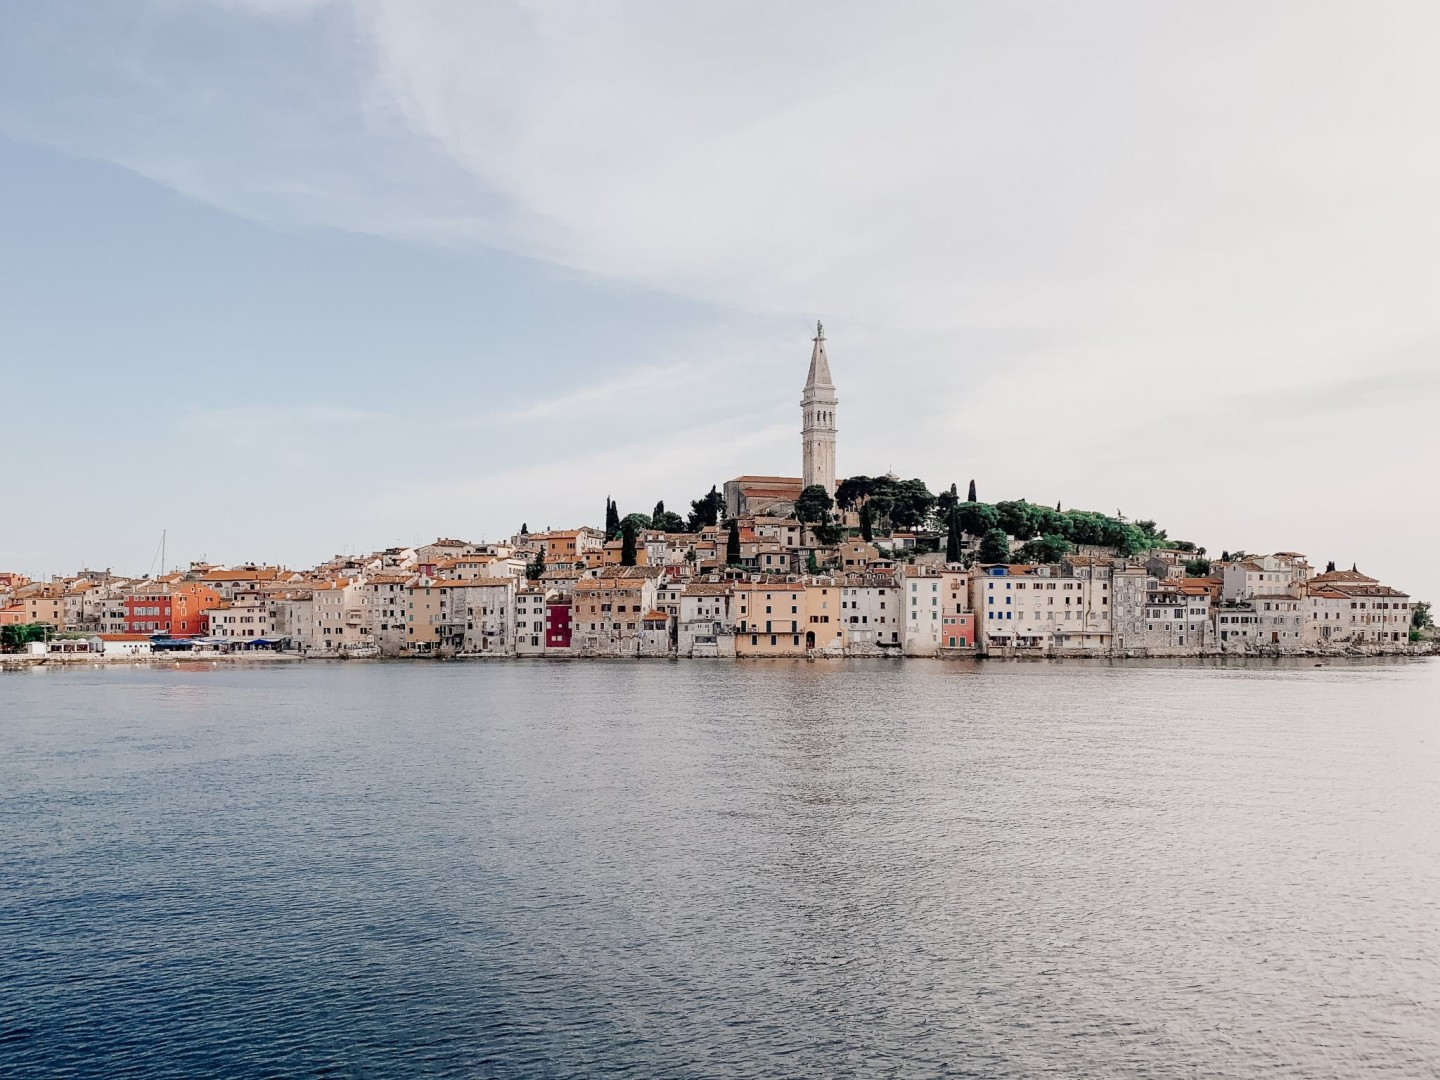 Lifestyle blogger Mollie Moore shares an Istria, Croatia travel guide. | Istria, Croatia Travel guide by popular London fashion and travel blogger Mollie Moore: image of Istria, Croatia and the Adriatic Sea.